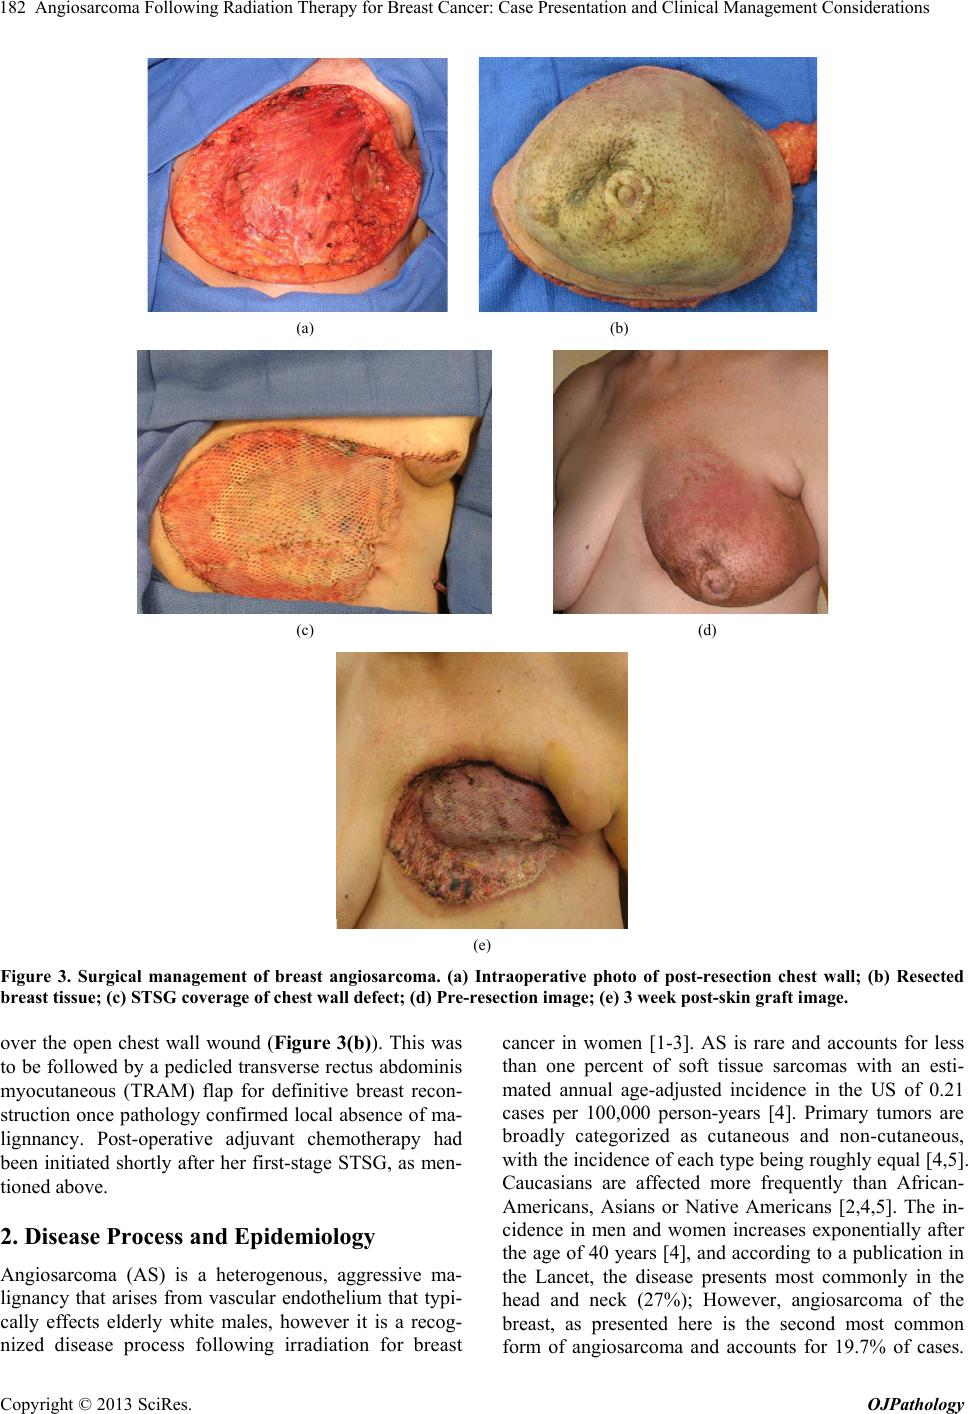 Pictures of and radiation chest wall inflammation and radiation - Angiosarcoma Following Radiation Therapy For Breast Cancer Case Presentation And Clinical Management Considerations